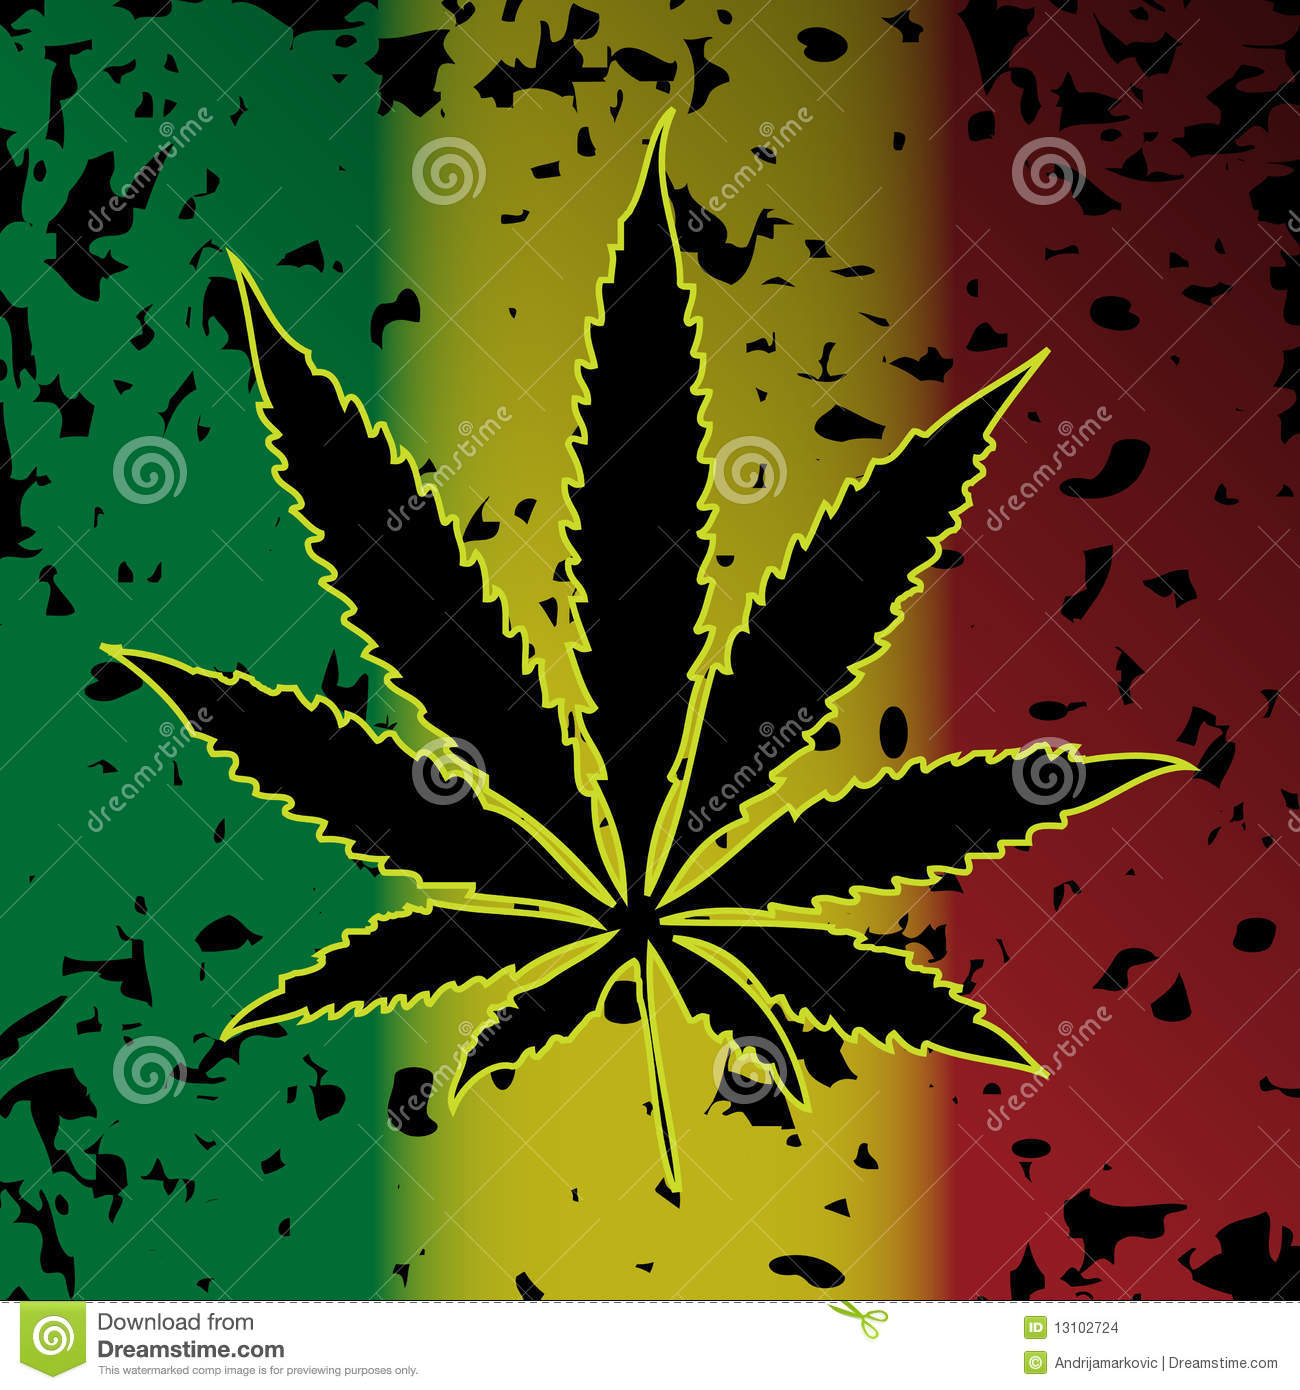 3d Abstract Art Hd Wallpaper Cannabis Marihuana Stock Afbeeldingen Beeld 13102724